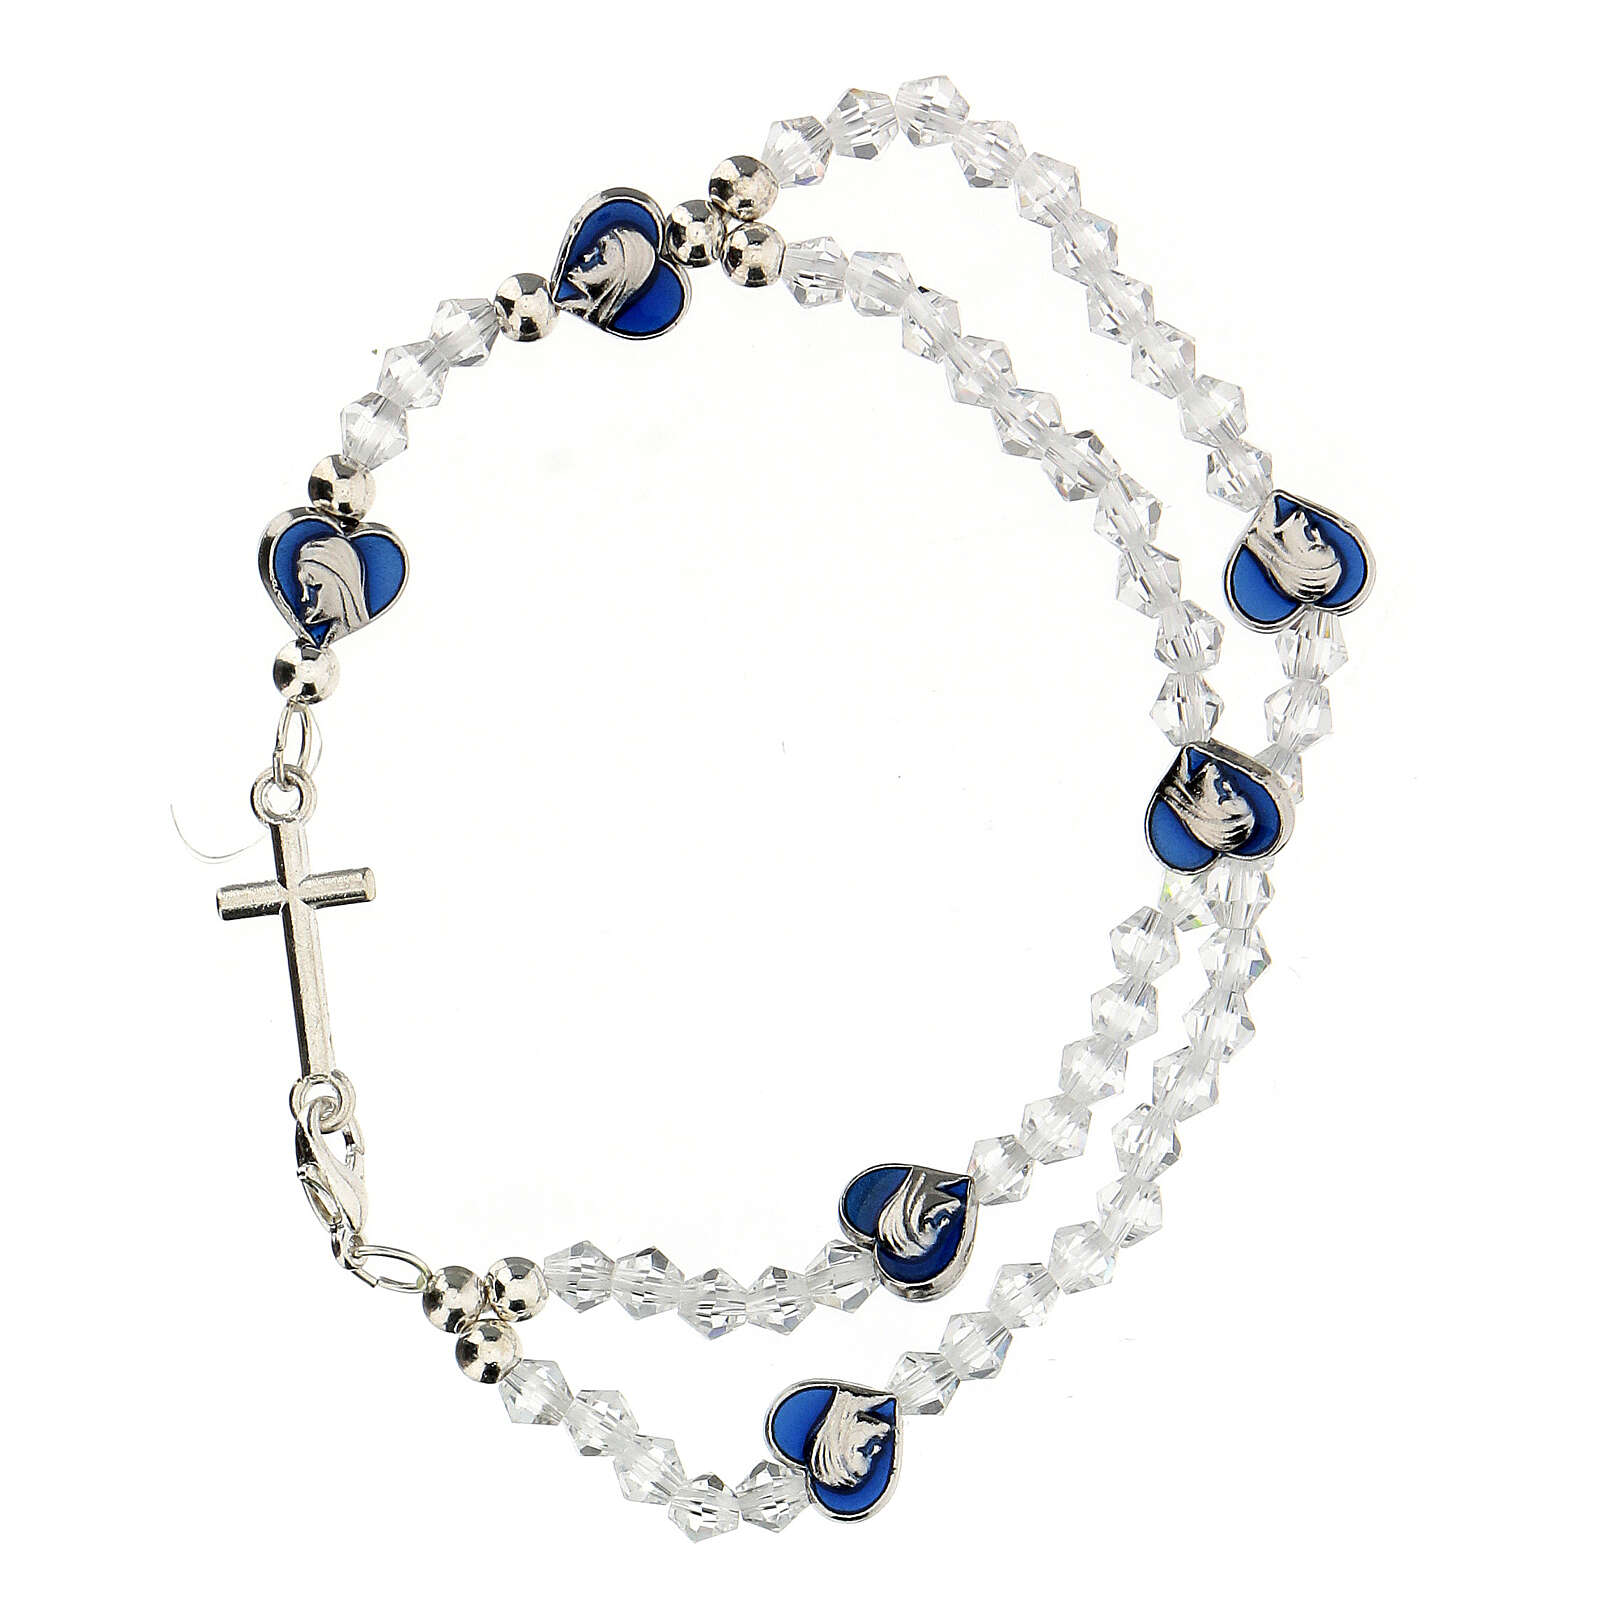 Elastic rosary bracelet with 3 mm transparent beads 4